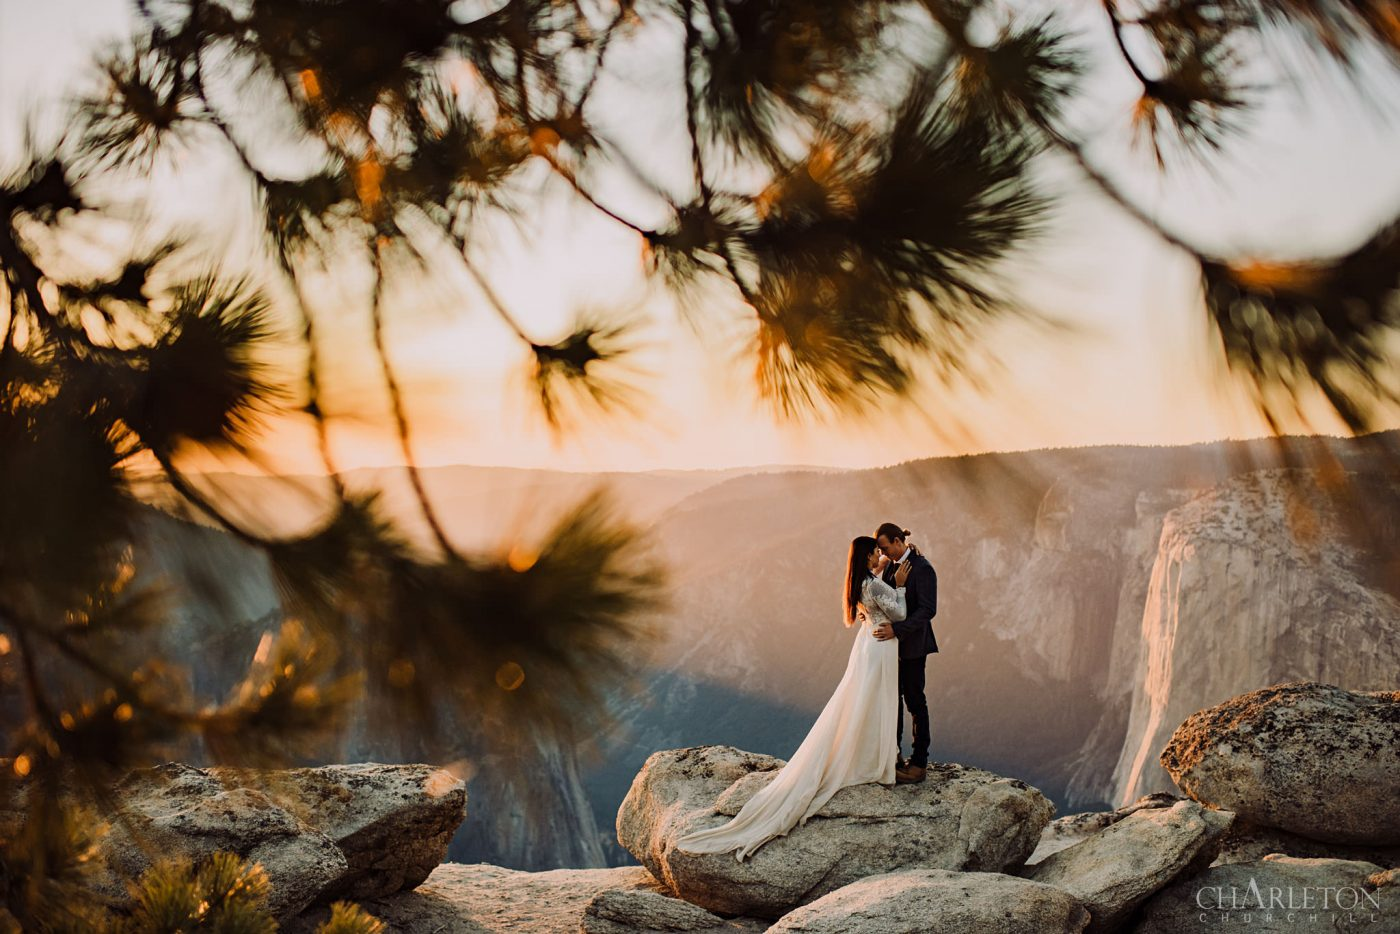 yosemite adventure wedding and elopement booking rules for permits in the national park